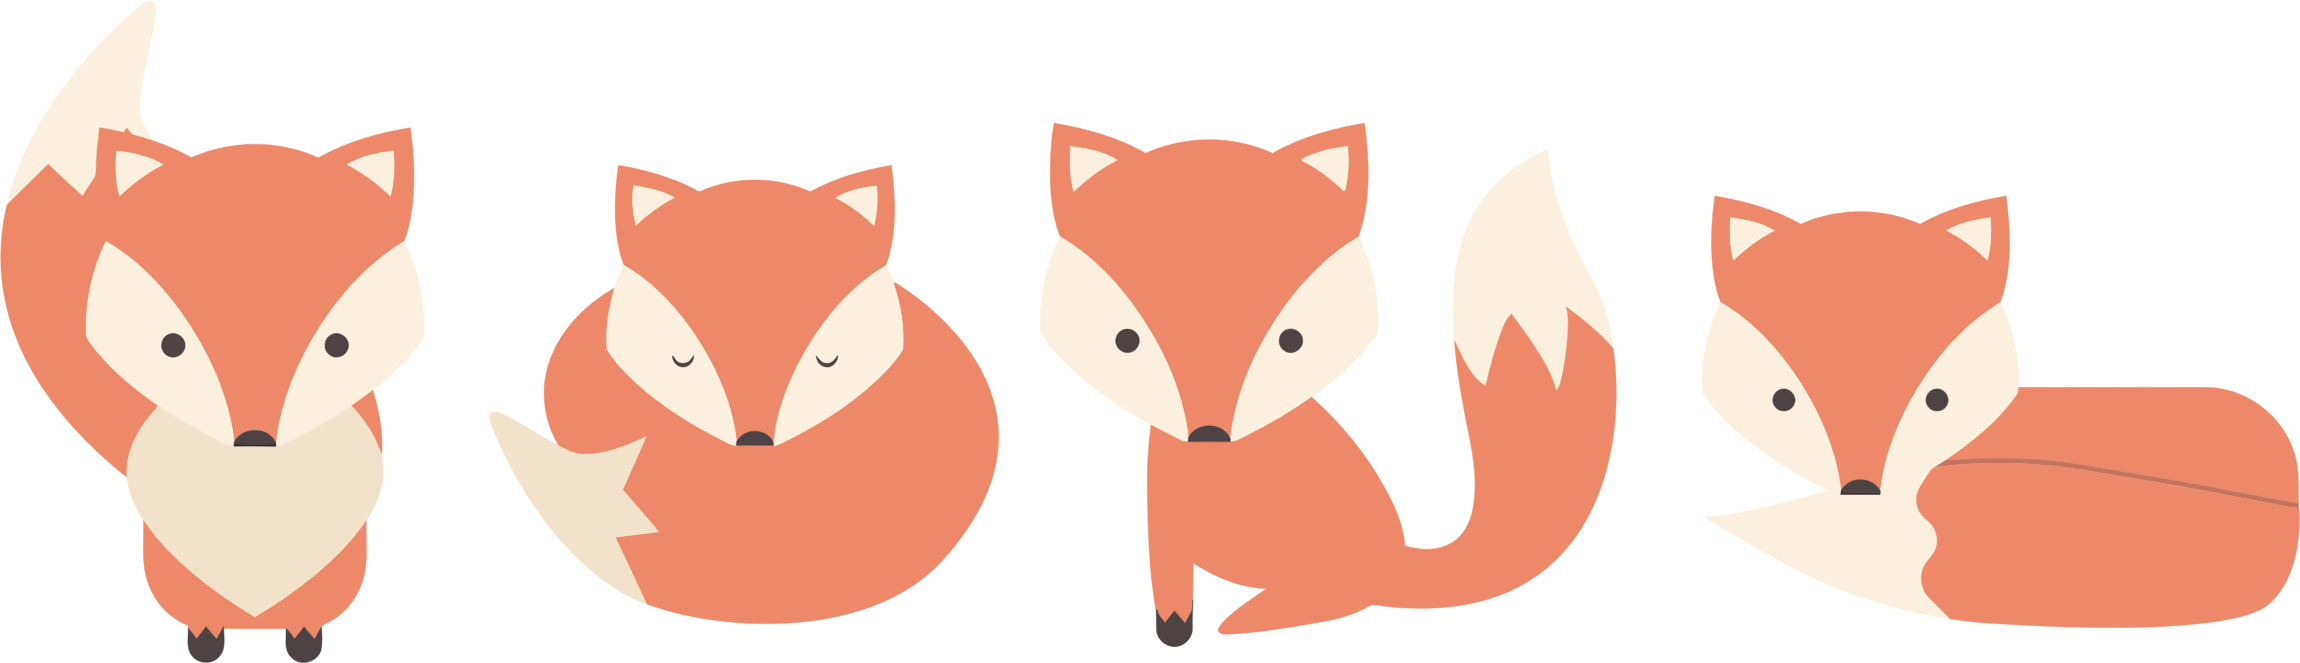 Fox cartoon png. Clipart poses big image